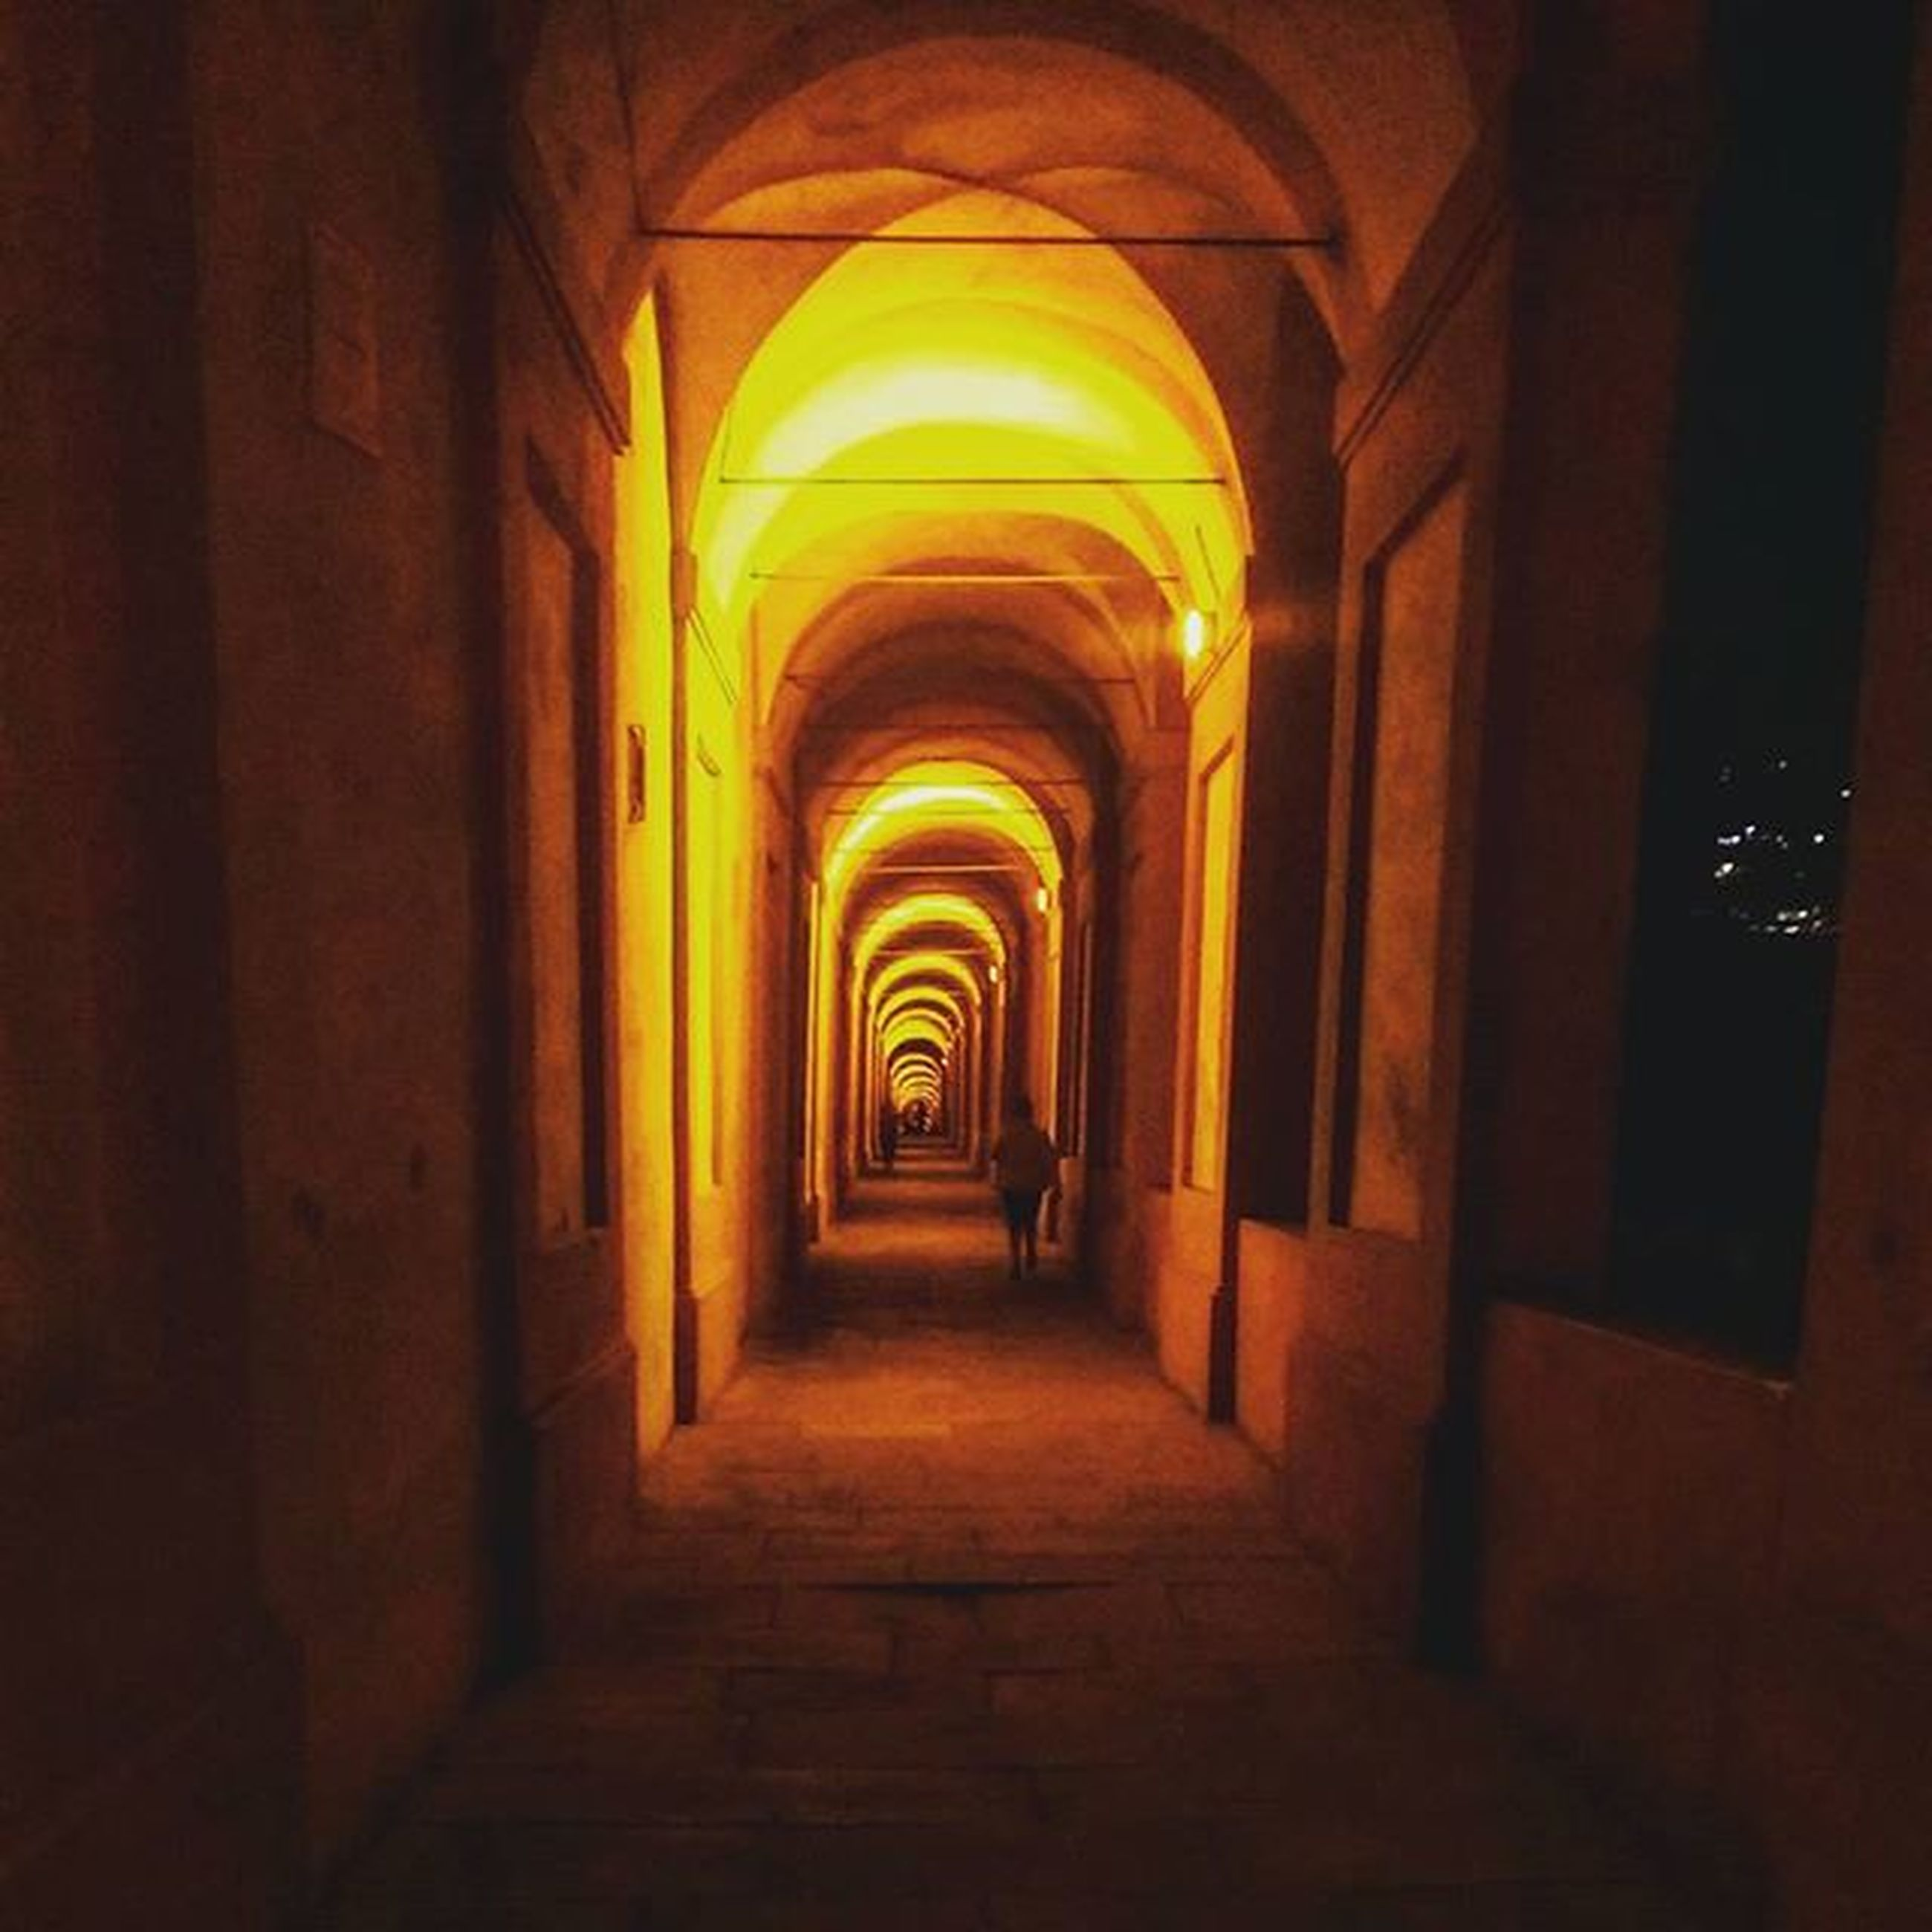 architecture, the way forward, arch, built structure, indoors, corridor, diminishing perspective, illuminated, building, empty, vanishing point, narrow, archway, building exterior, history, night, tunnel, entrance, lighting equipment, walkway